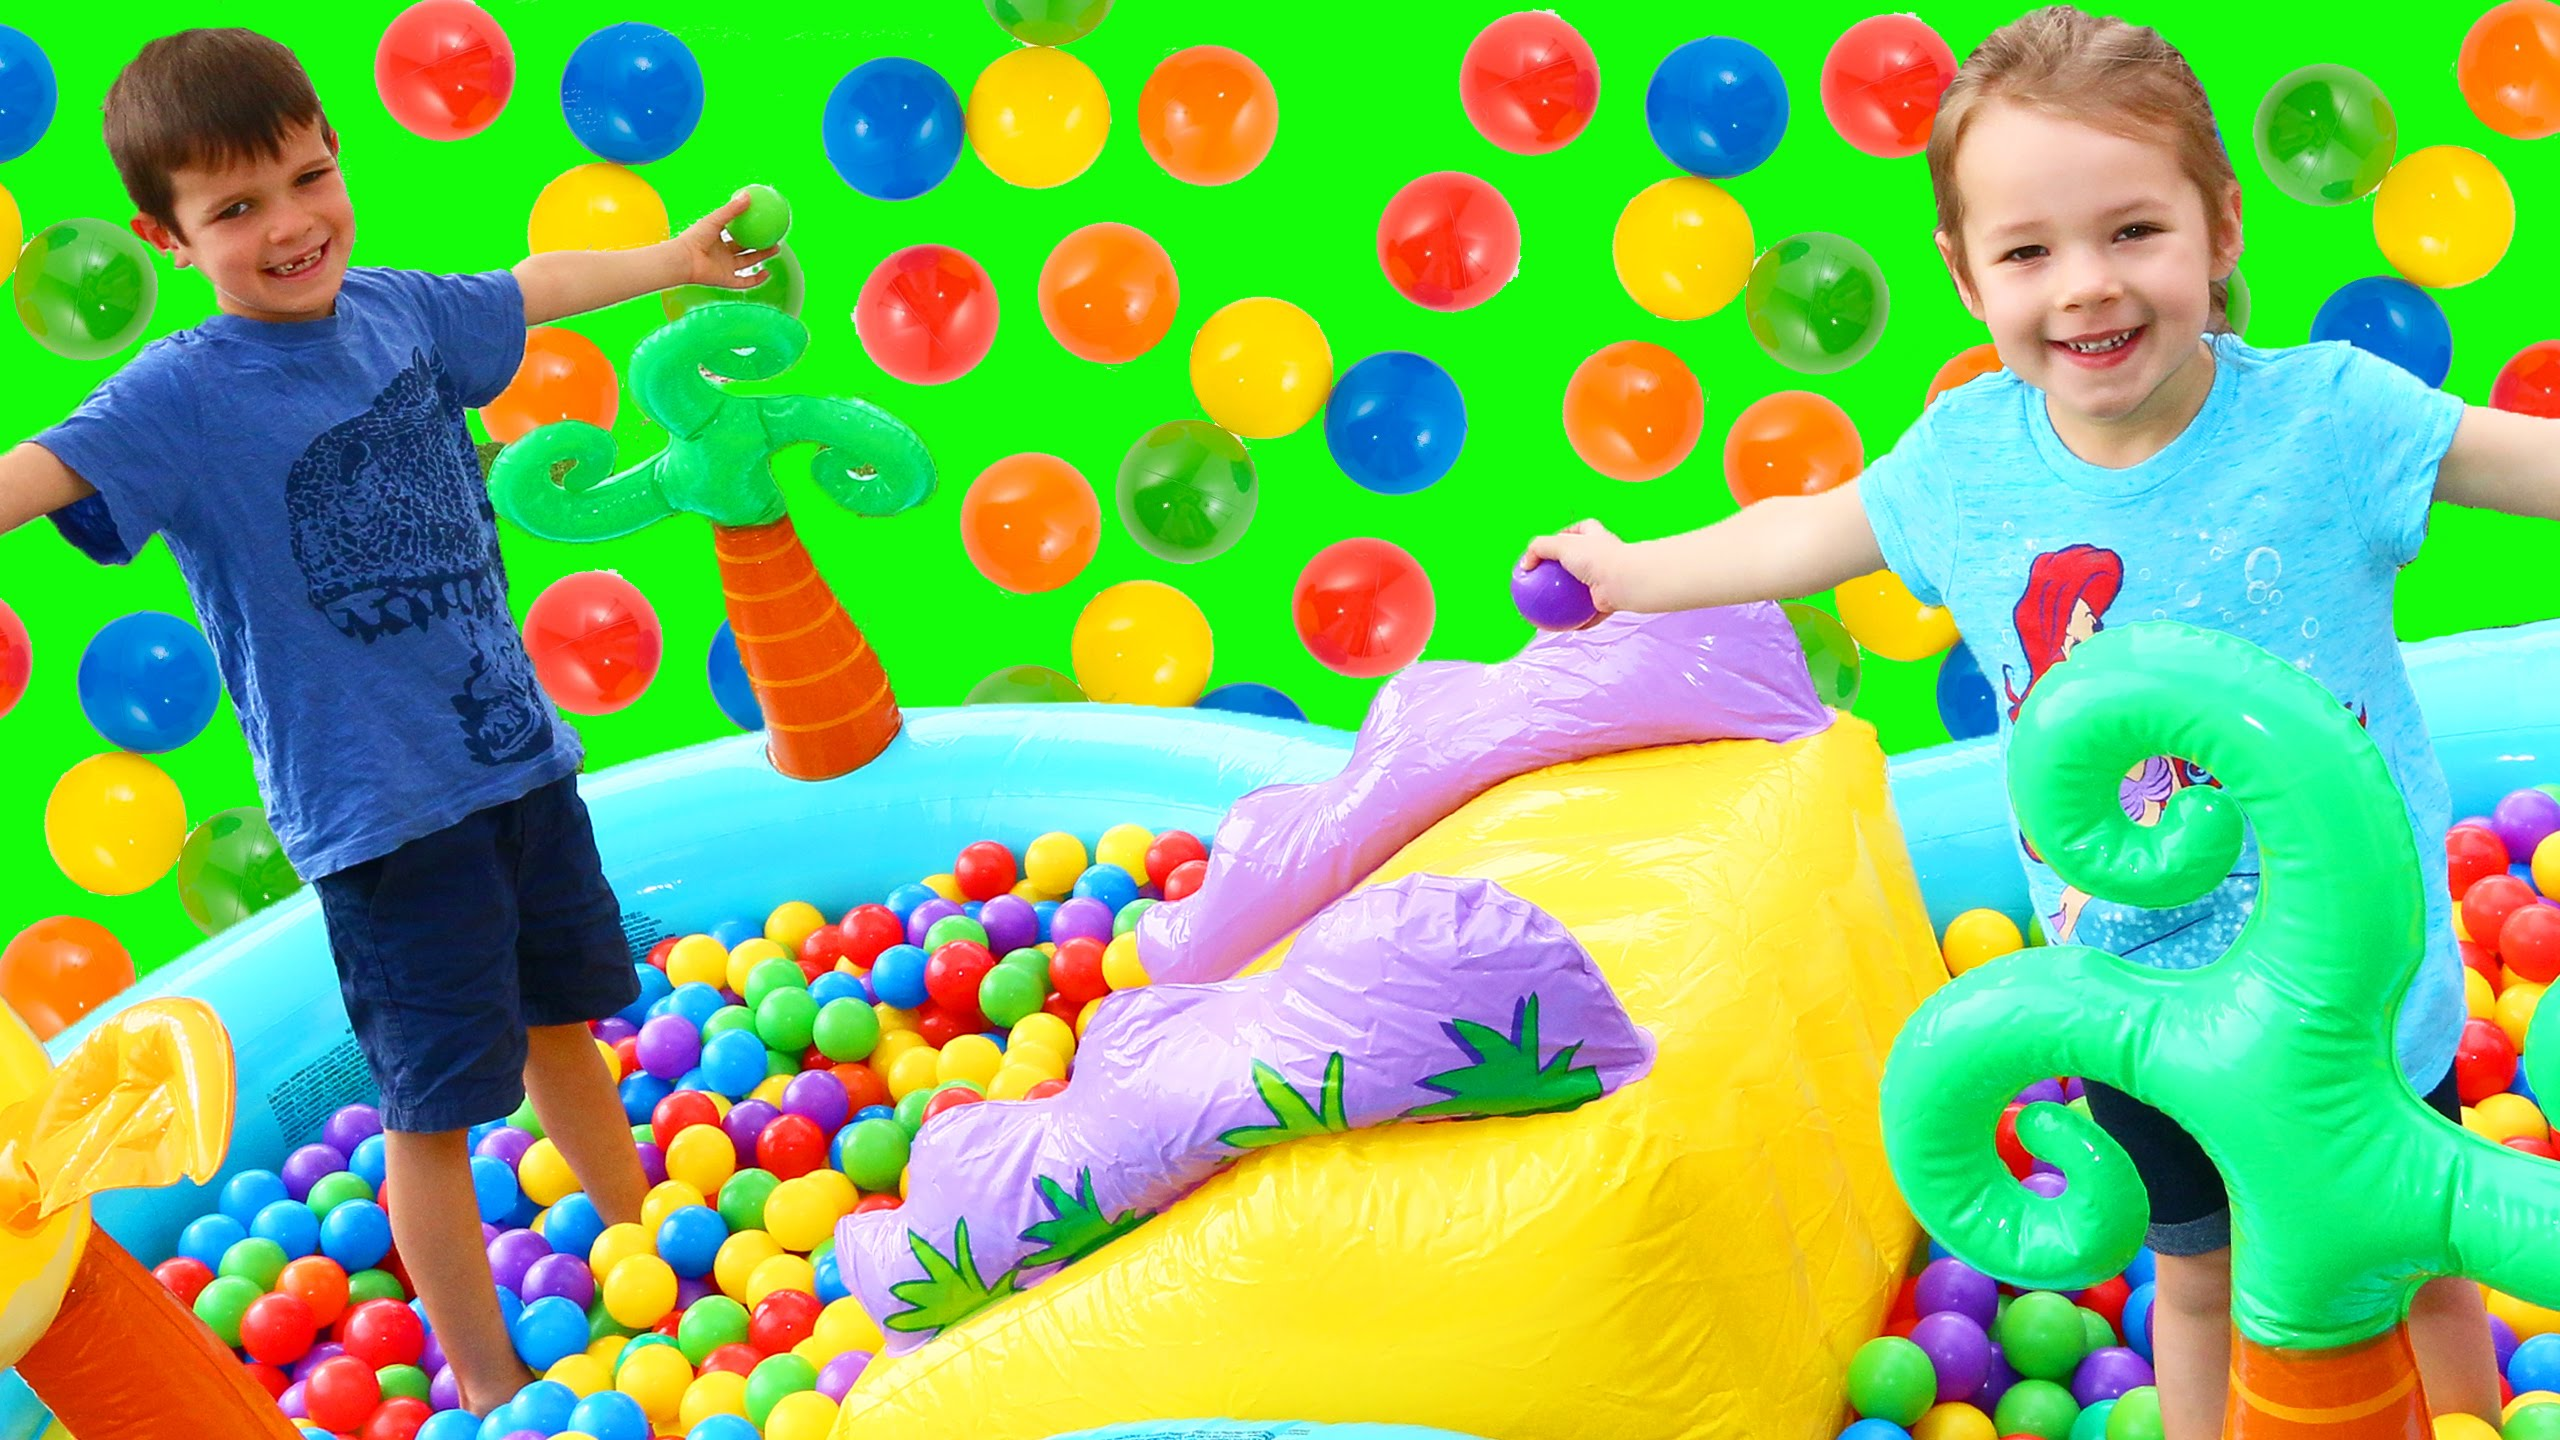 Giant Ball Pit SWIMMING POOL & Slide Surprise Toys DisneyCarToys Kids Fun Ballpit